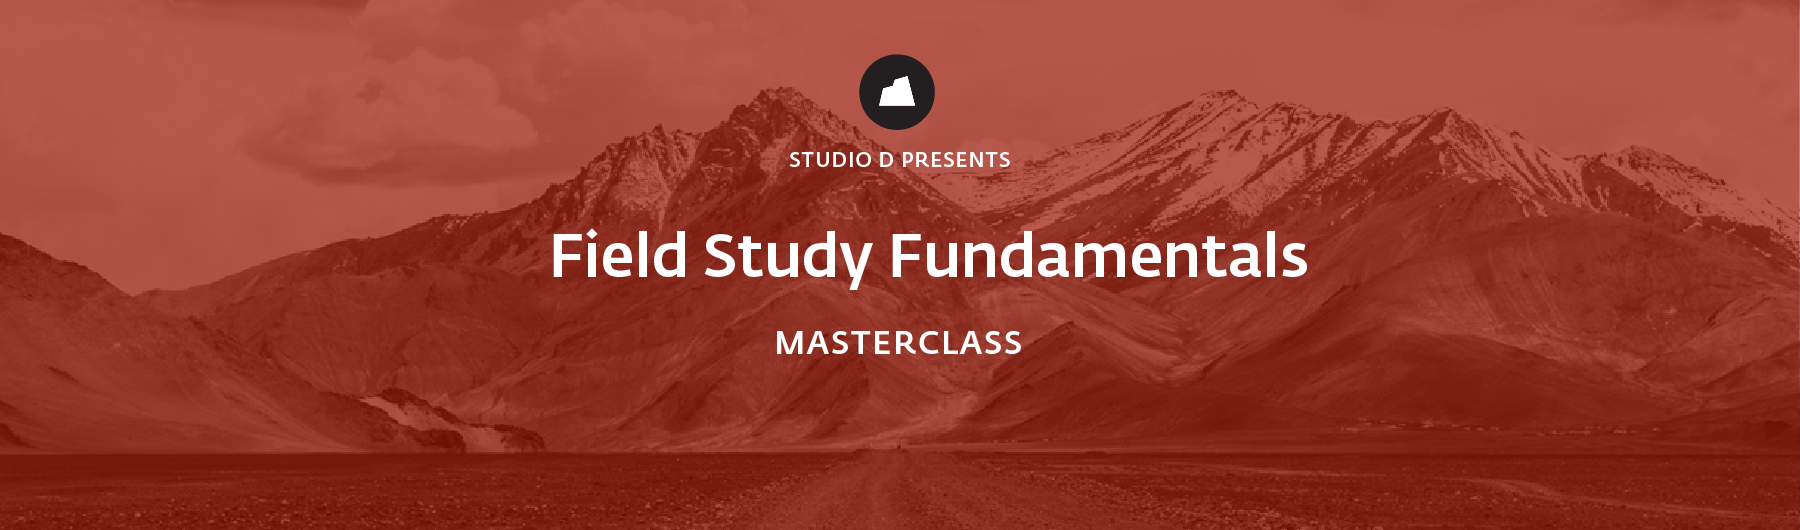 Field Study Fundamentals Masterclass, 13 April 2020, Mumbai